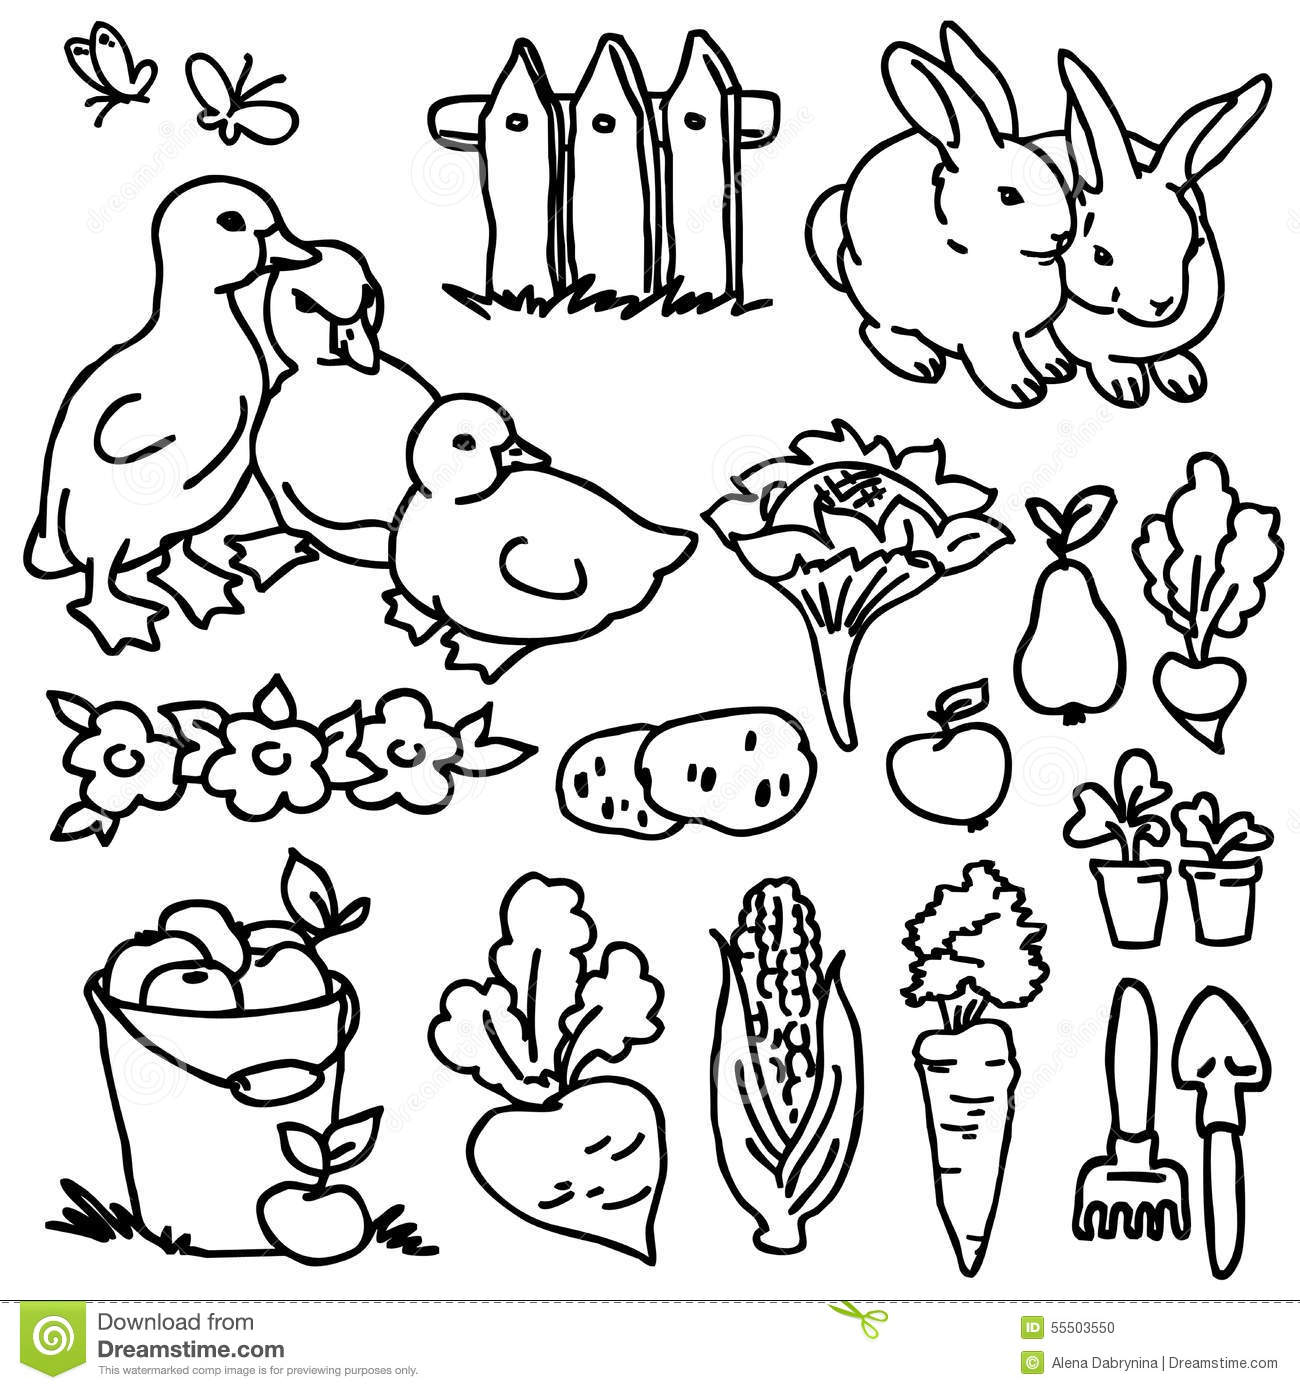 Livre de coloriage animaux de ferme de bande dessin e illustration stock illustration du - Coloriage bande dessinee ...